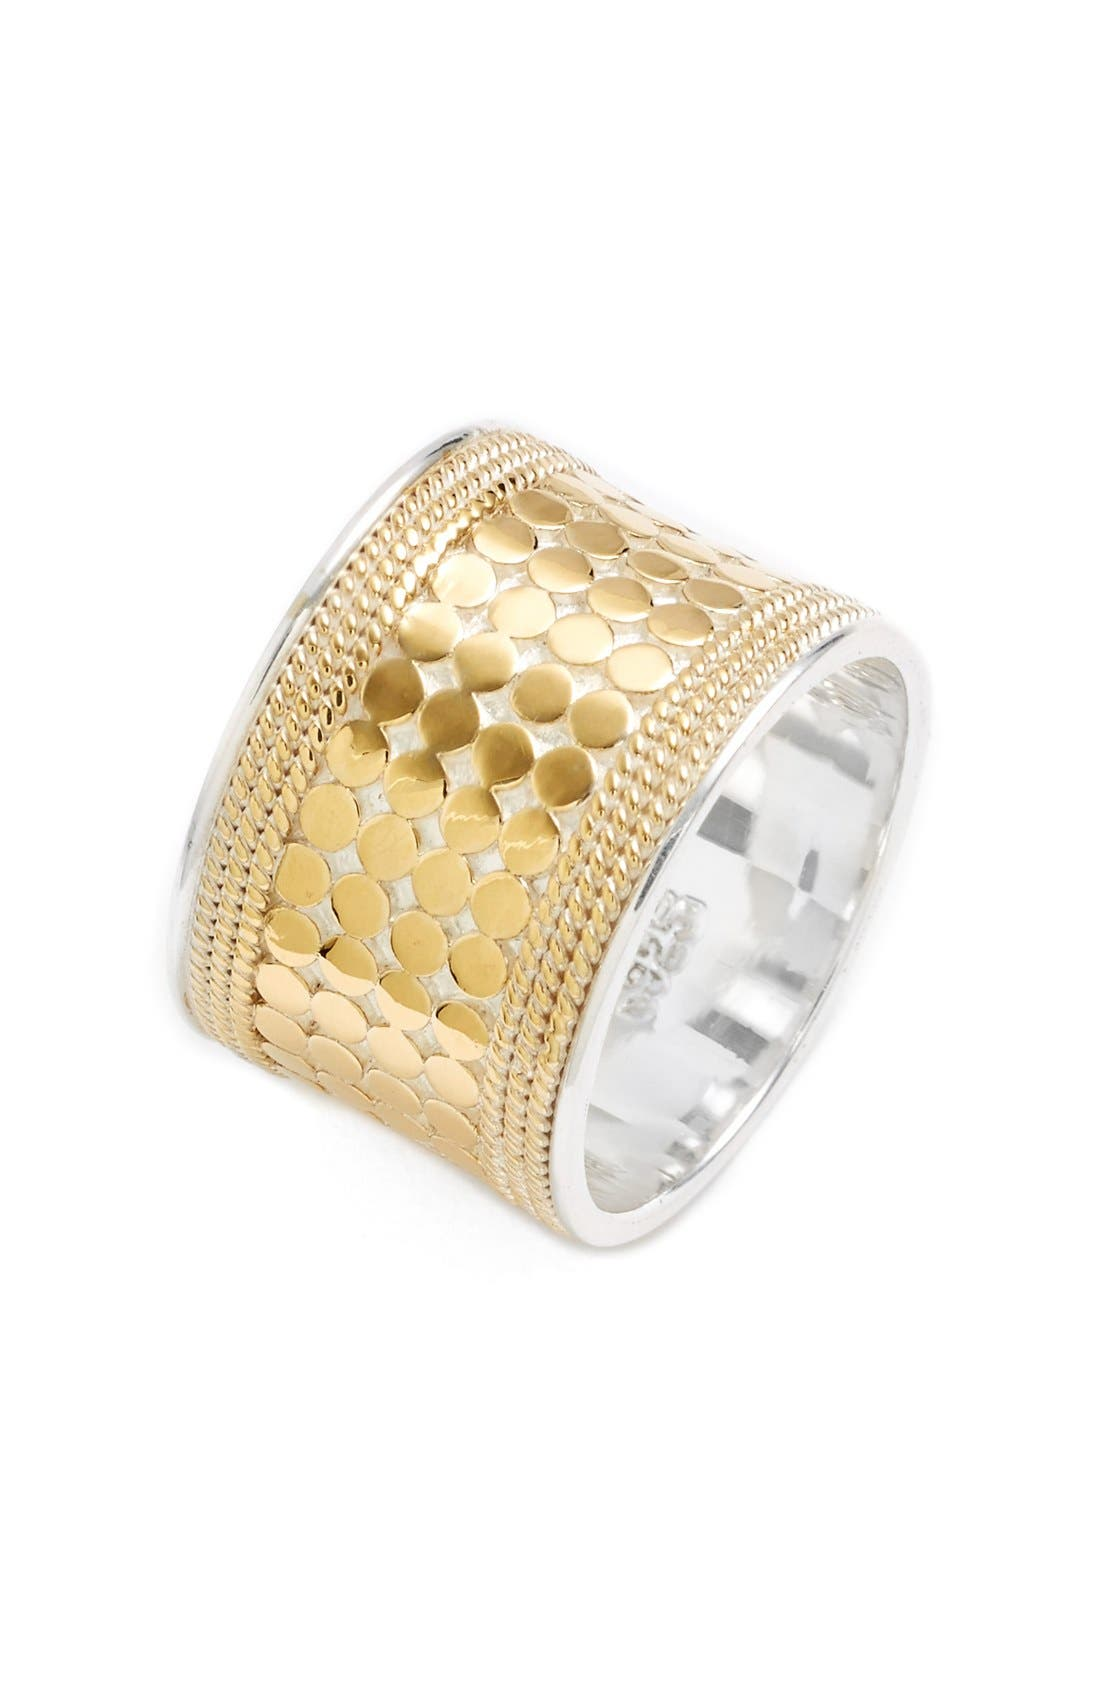 Main Image - Anna Beck 'Gili' Cigar Band Ring